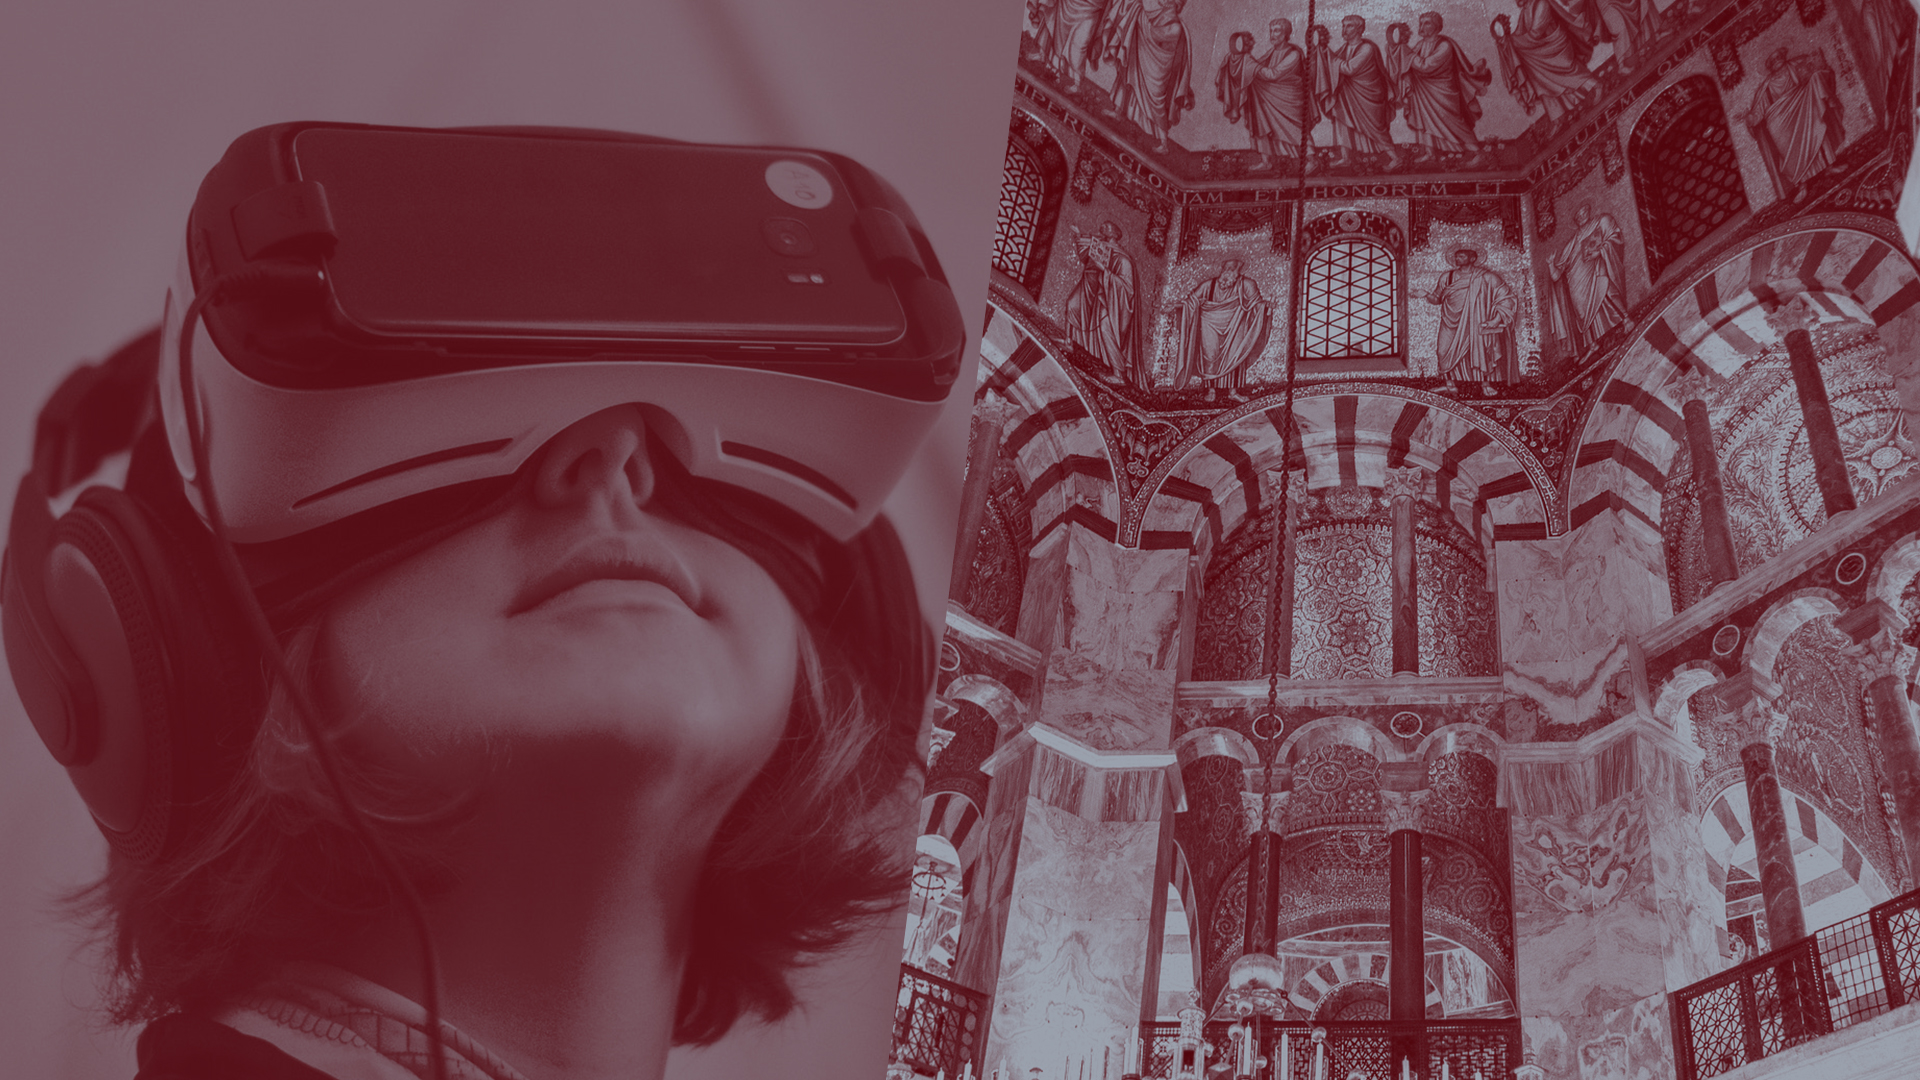 Man with VR glasses & interior view of a cathedral